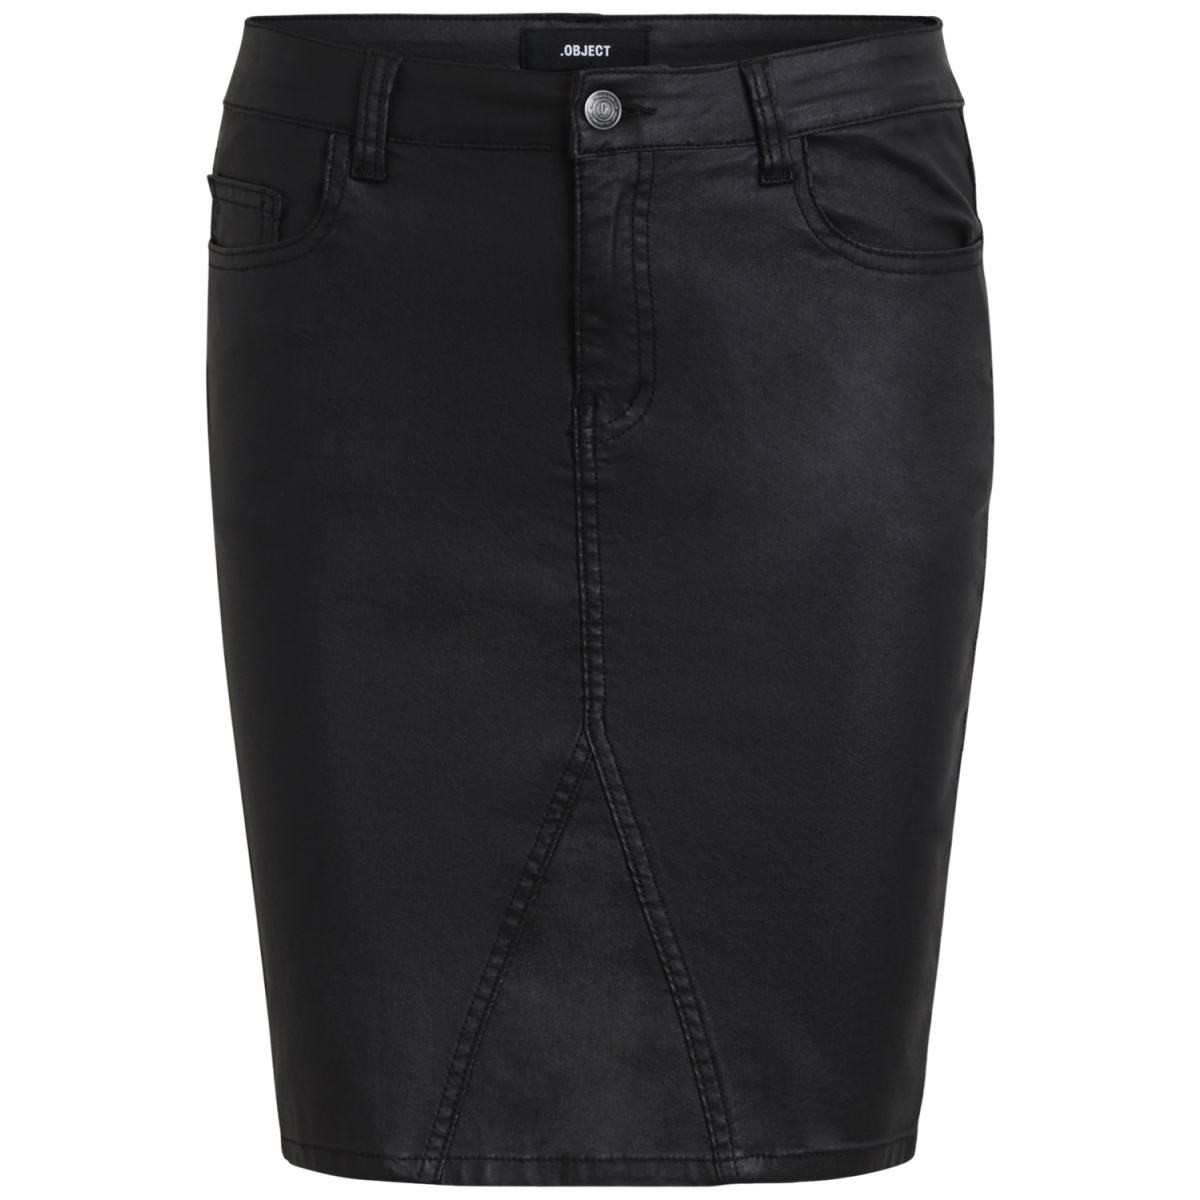 objbelle coated skirt noos 23025385 object rok black